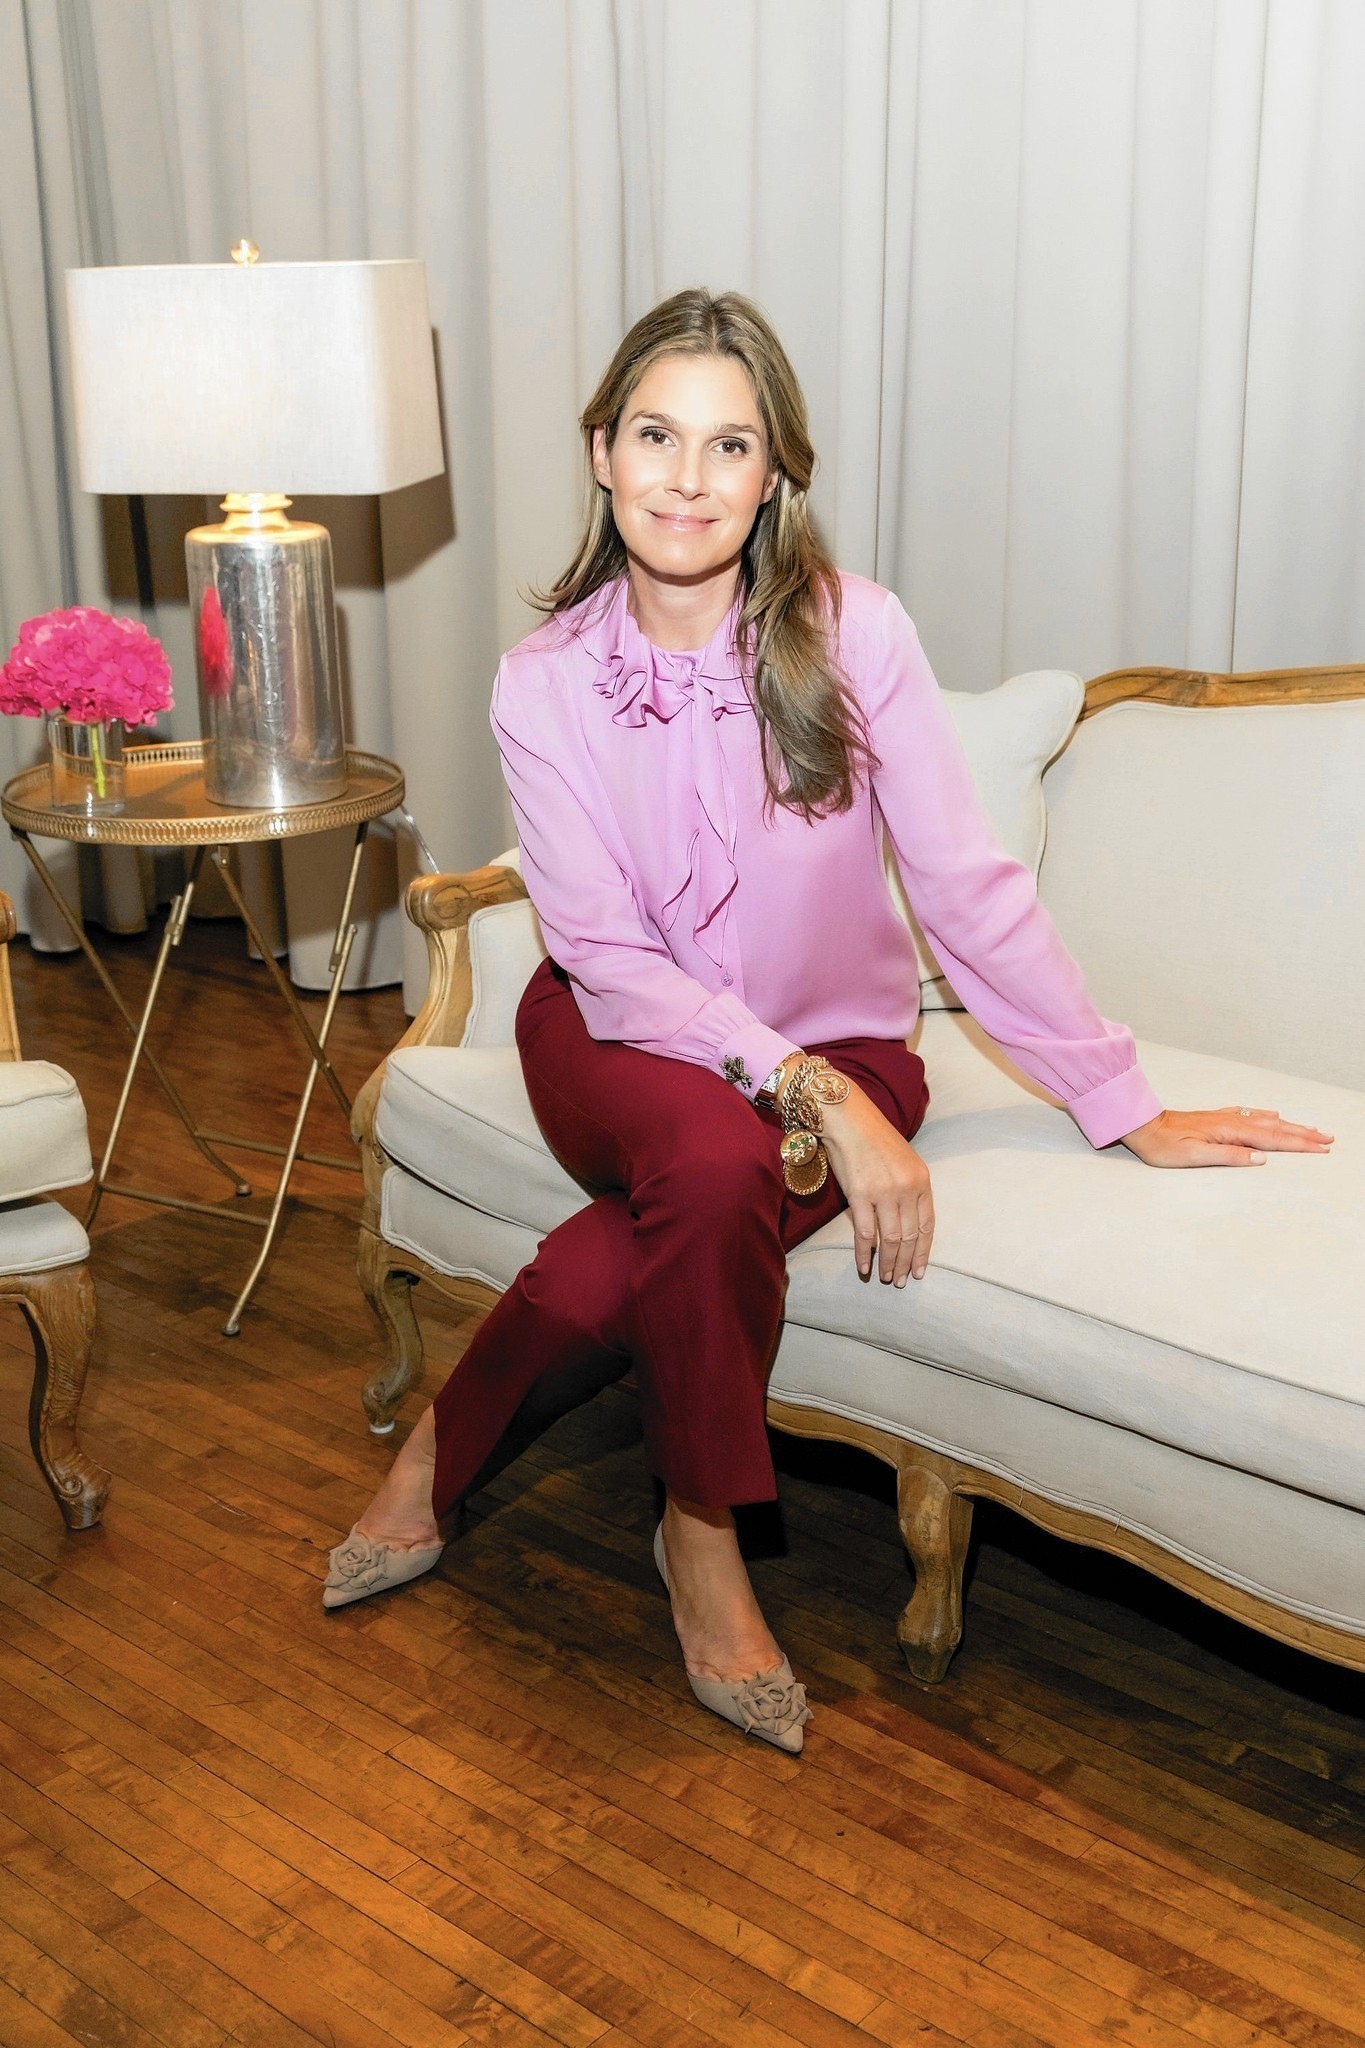 Holidays are coming up roses for Aerin Lauder